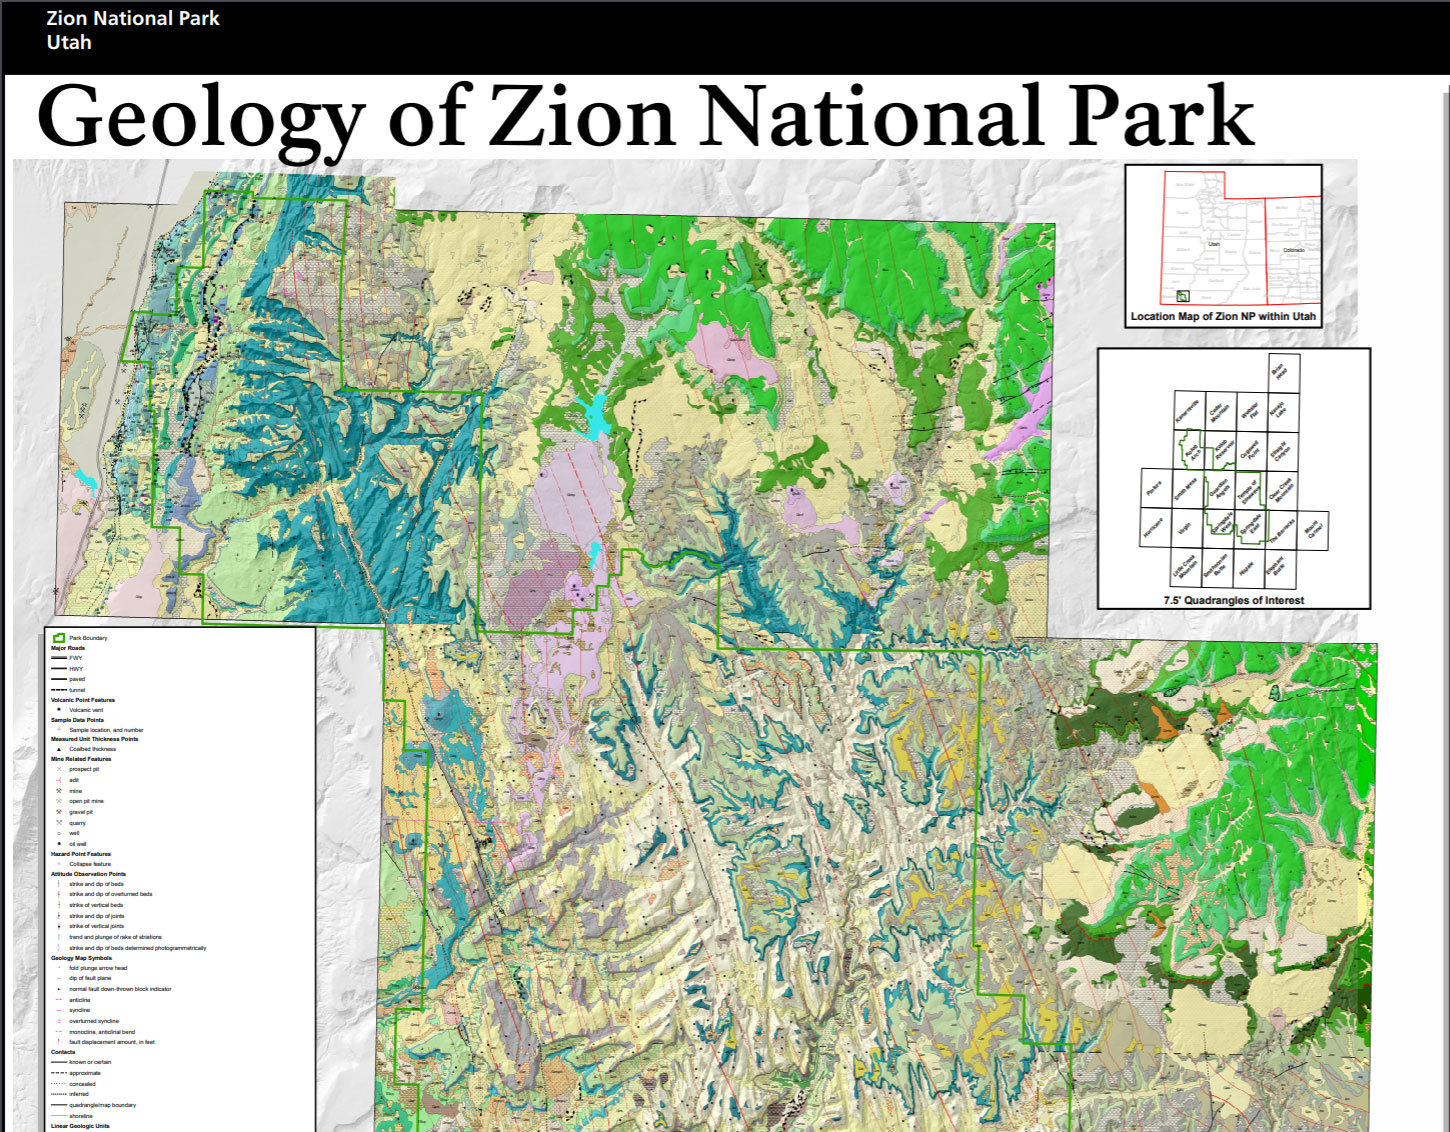 NPS Geodiversity Atlas—Zion National Park, Utah (U.S. National Park on